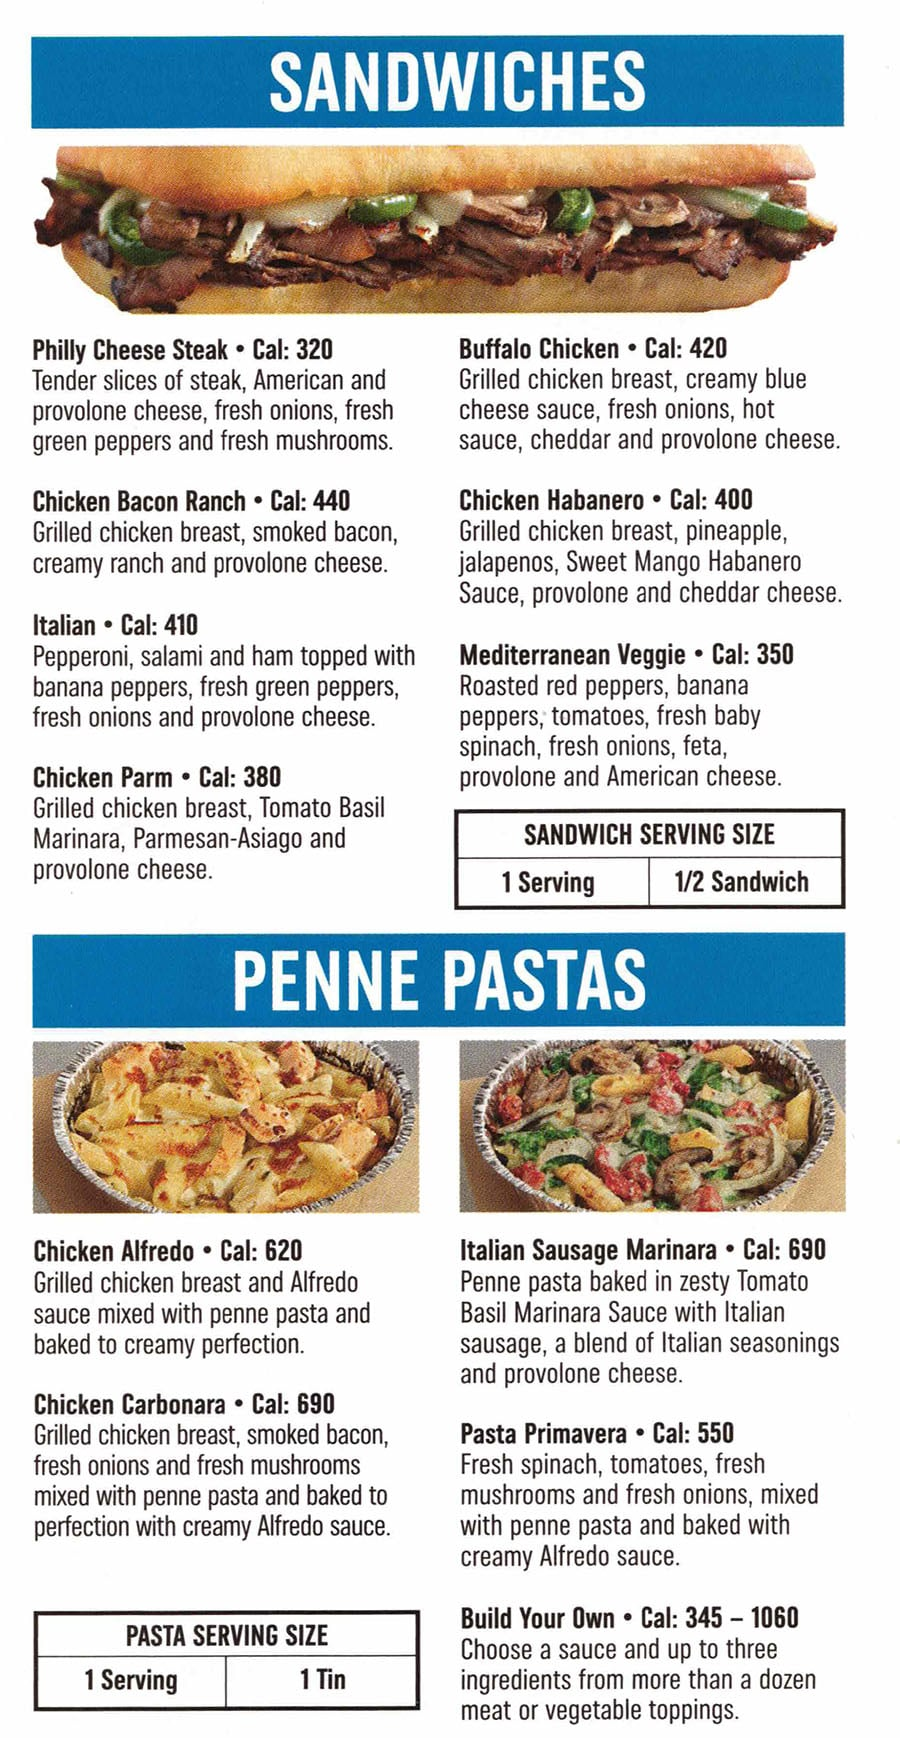 Domino's Pizza menu - sandwiches, penne pasta